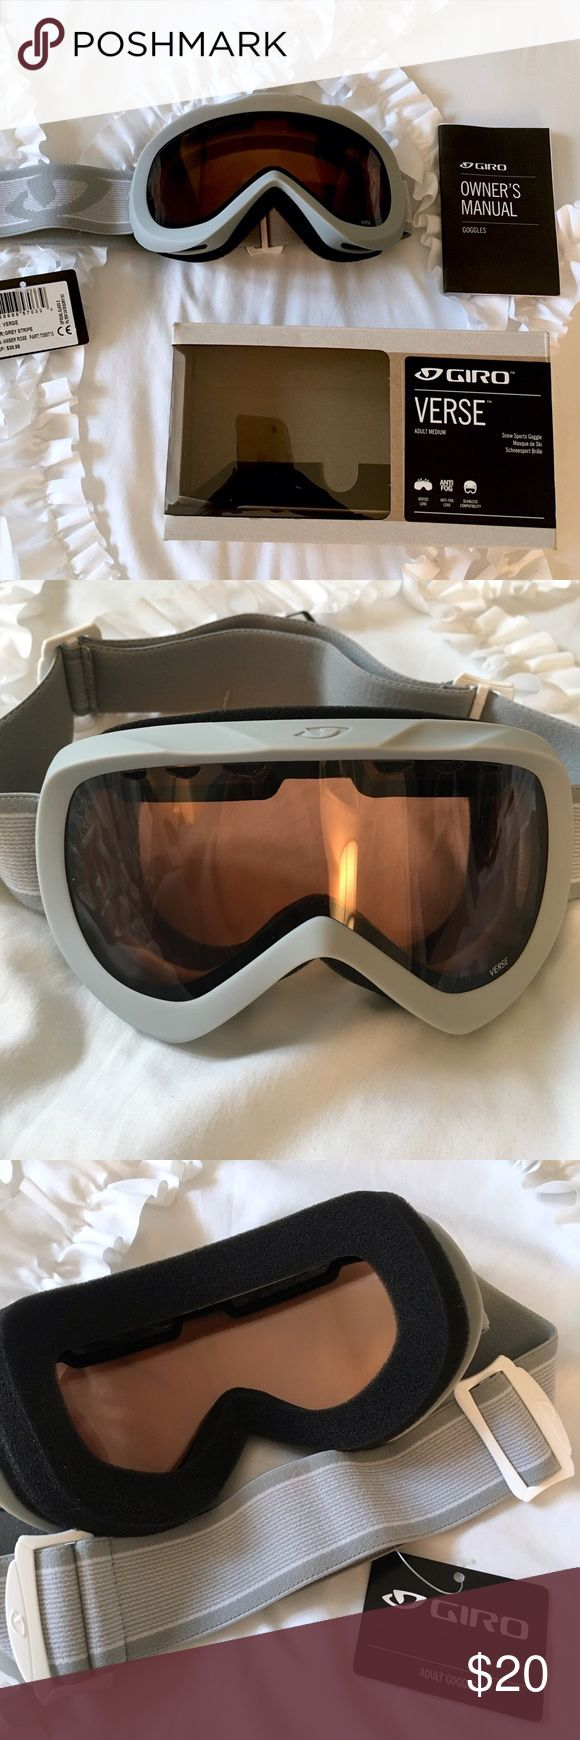 •NWT Giro Snow Sports Goggles• NWT Giro Snow Sports Goggles in Adult Medium.                             Model: VERSE                                                                               Lens: AMBER ROSE                                                                     COLOR: GREY STRIPE GIRO Other